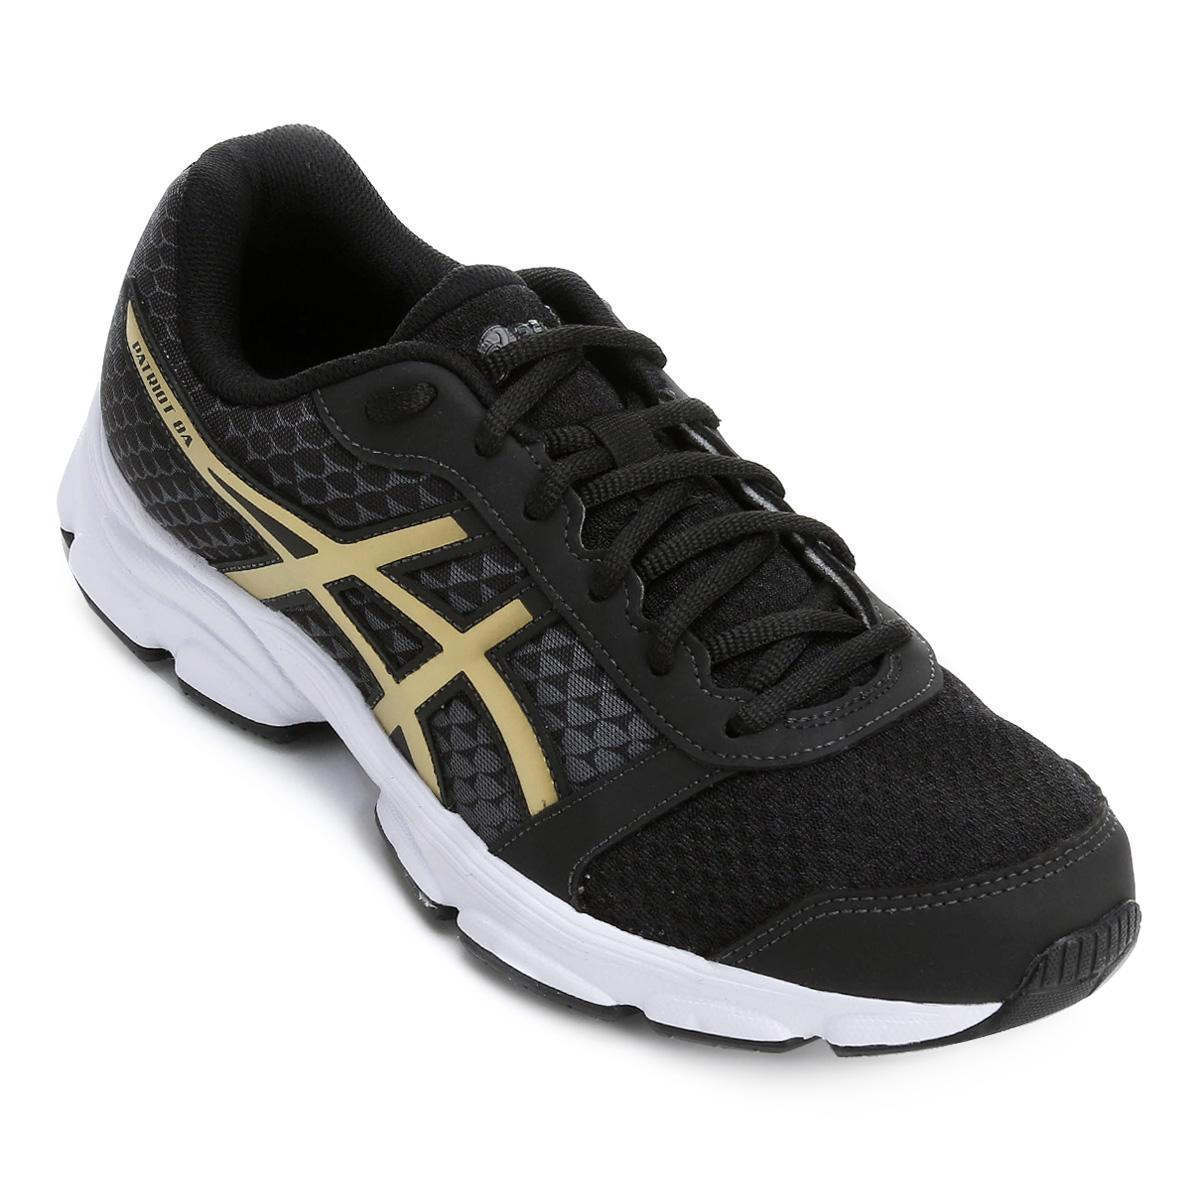 tenis asics - Black Friday - Tênis Asics Patriot 8 - R$149,99